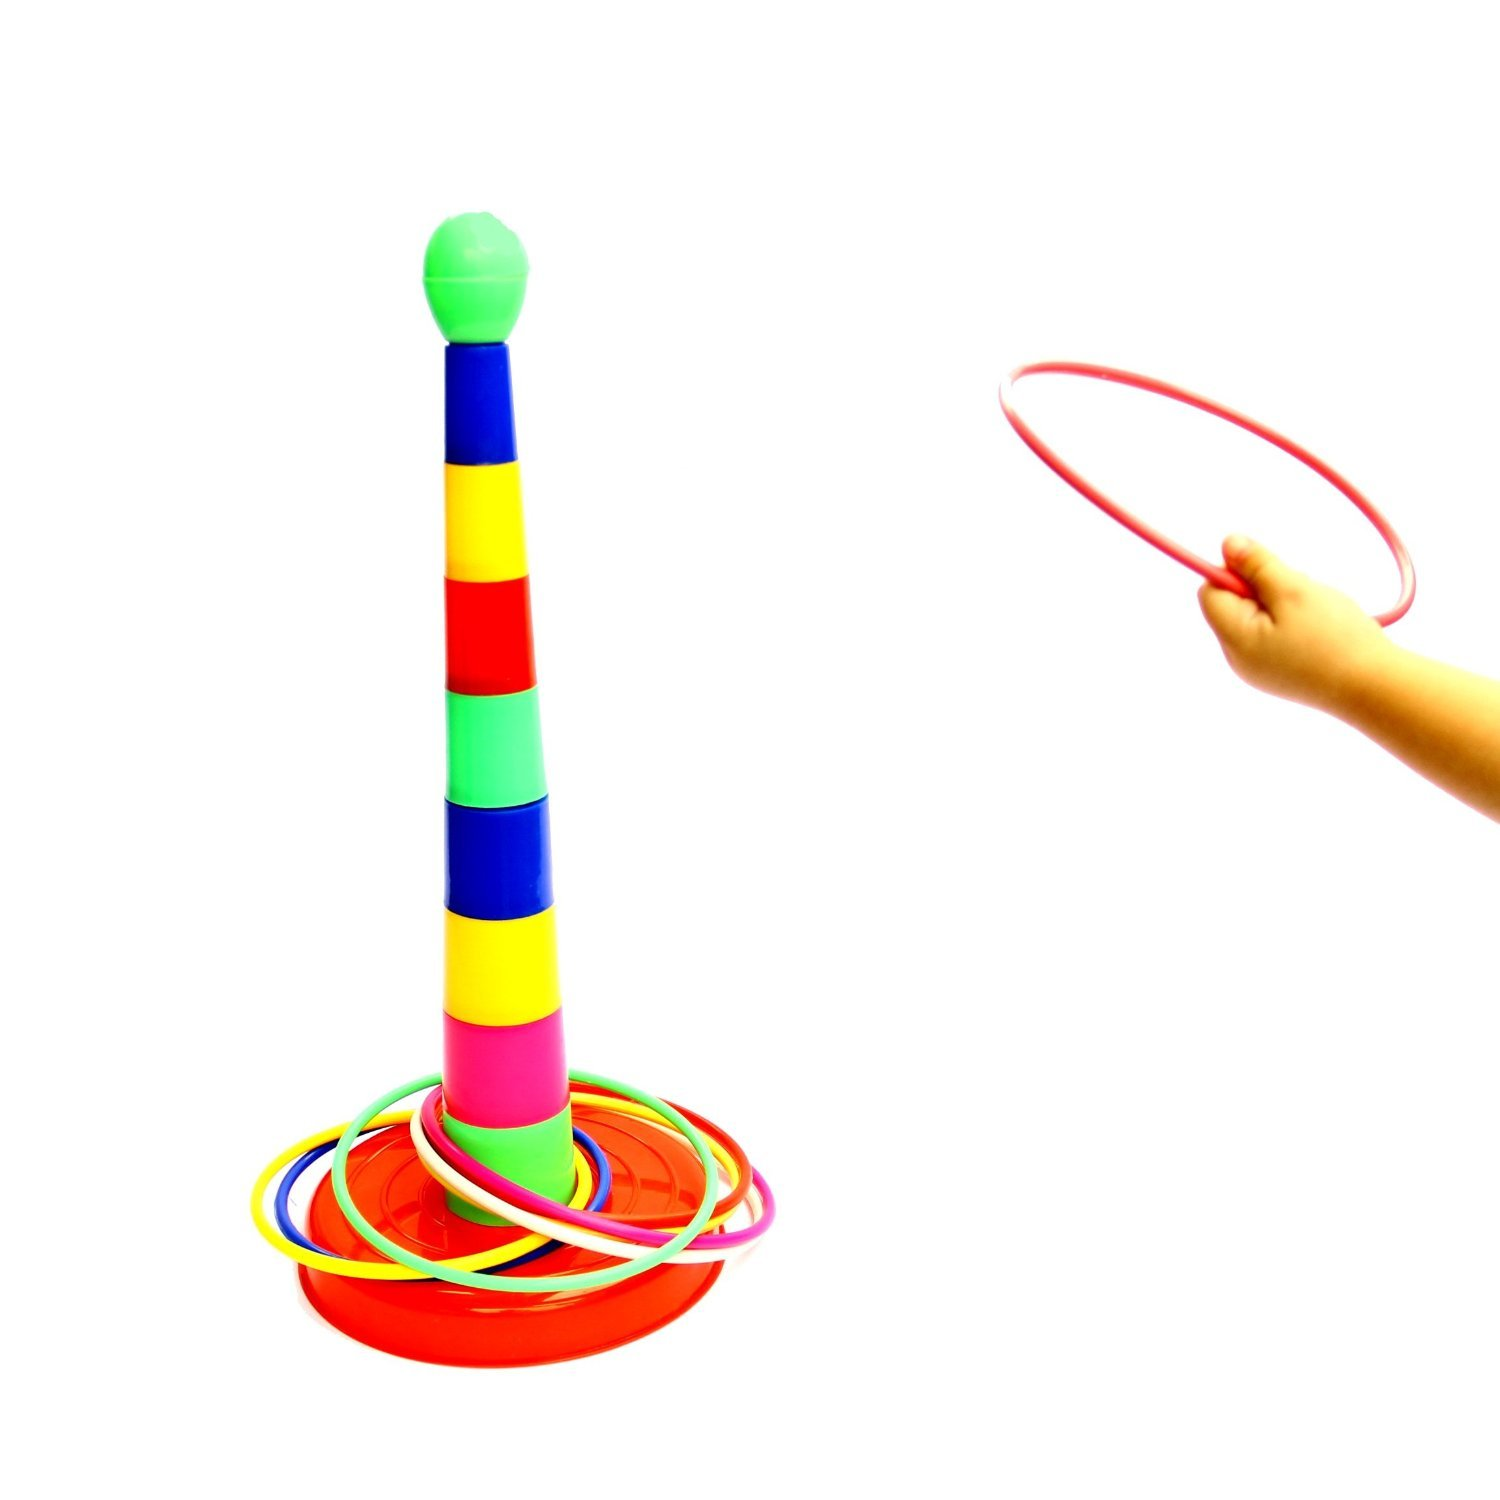 Ring Toss Game Set 46 Centimeters - 18 Inches Colorful Plastic Sport Game dazzling toys